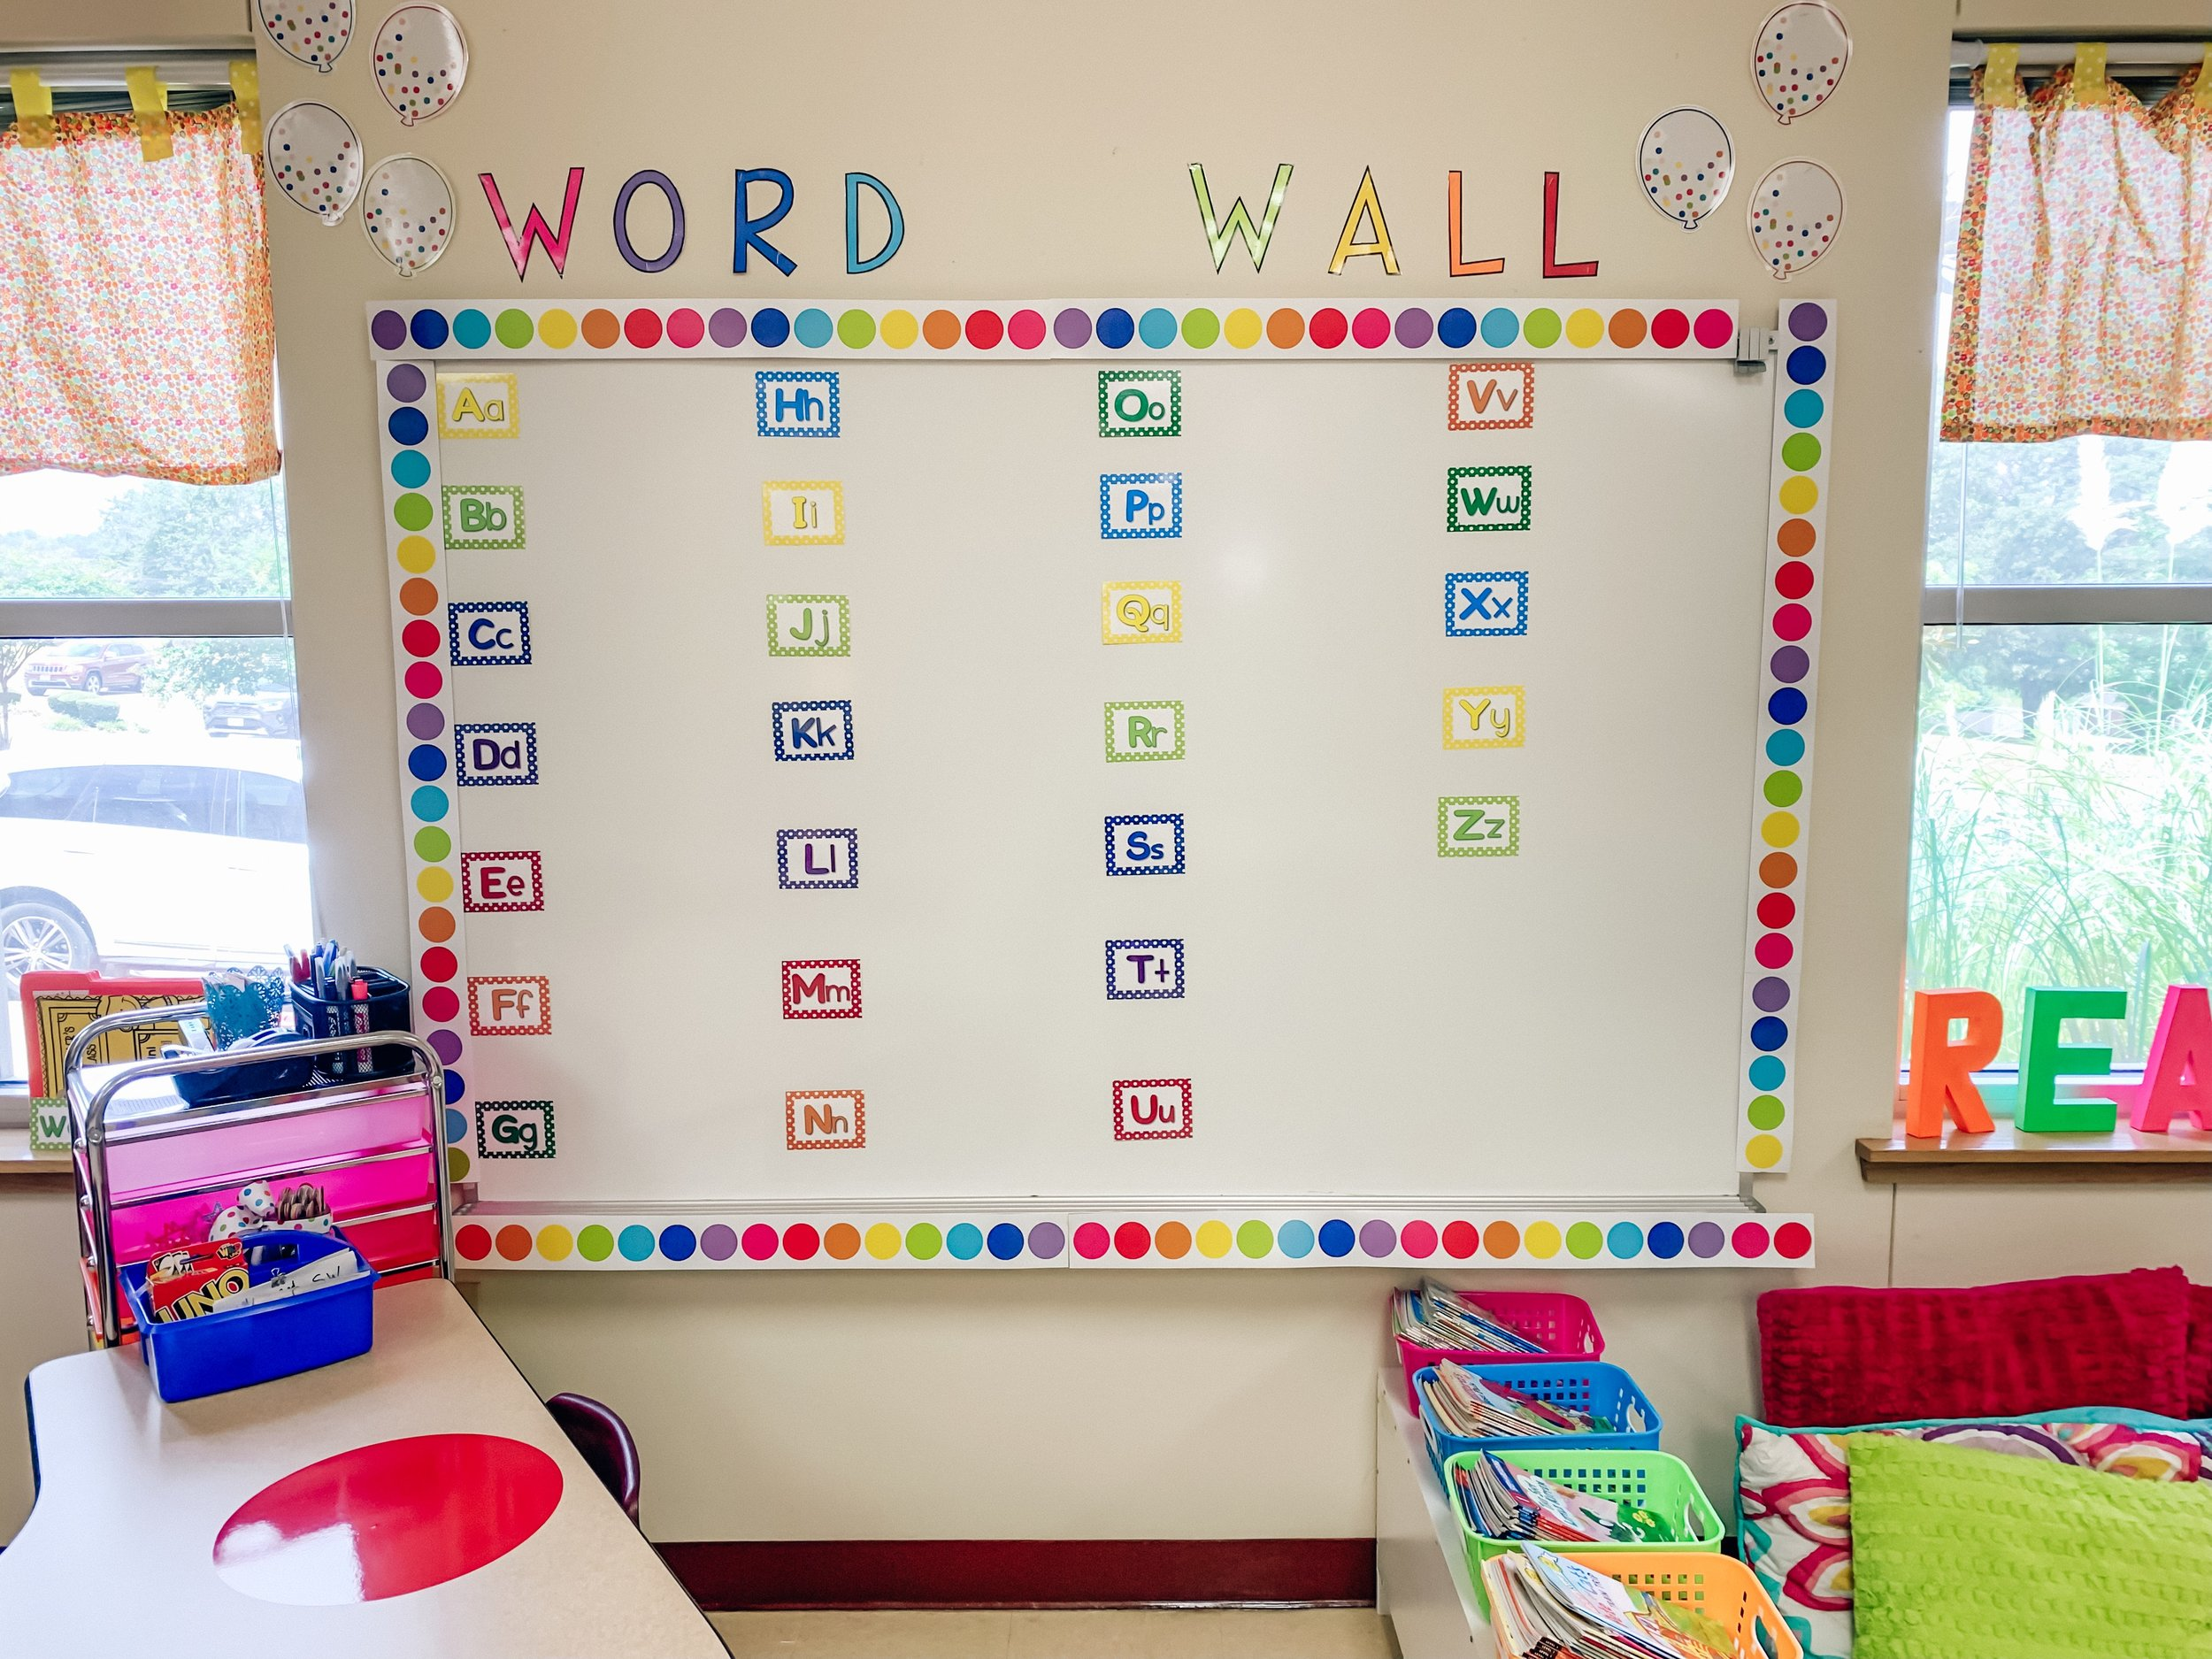 As we learn new sight words each week students will add them to our word wall to use a resource throughout the year! We also have mini word walls that you can see peeking through in on the left window seal that they can take back to their desk to use when writing.